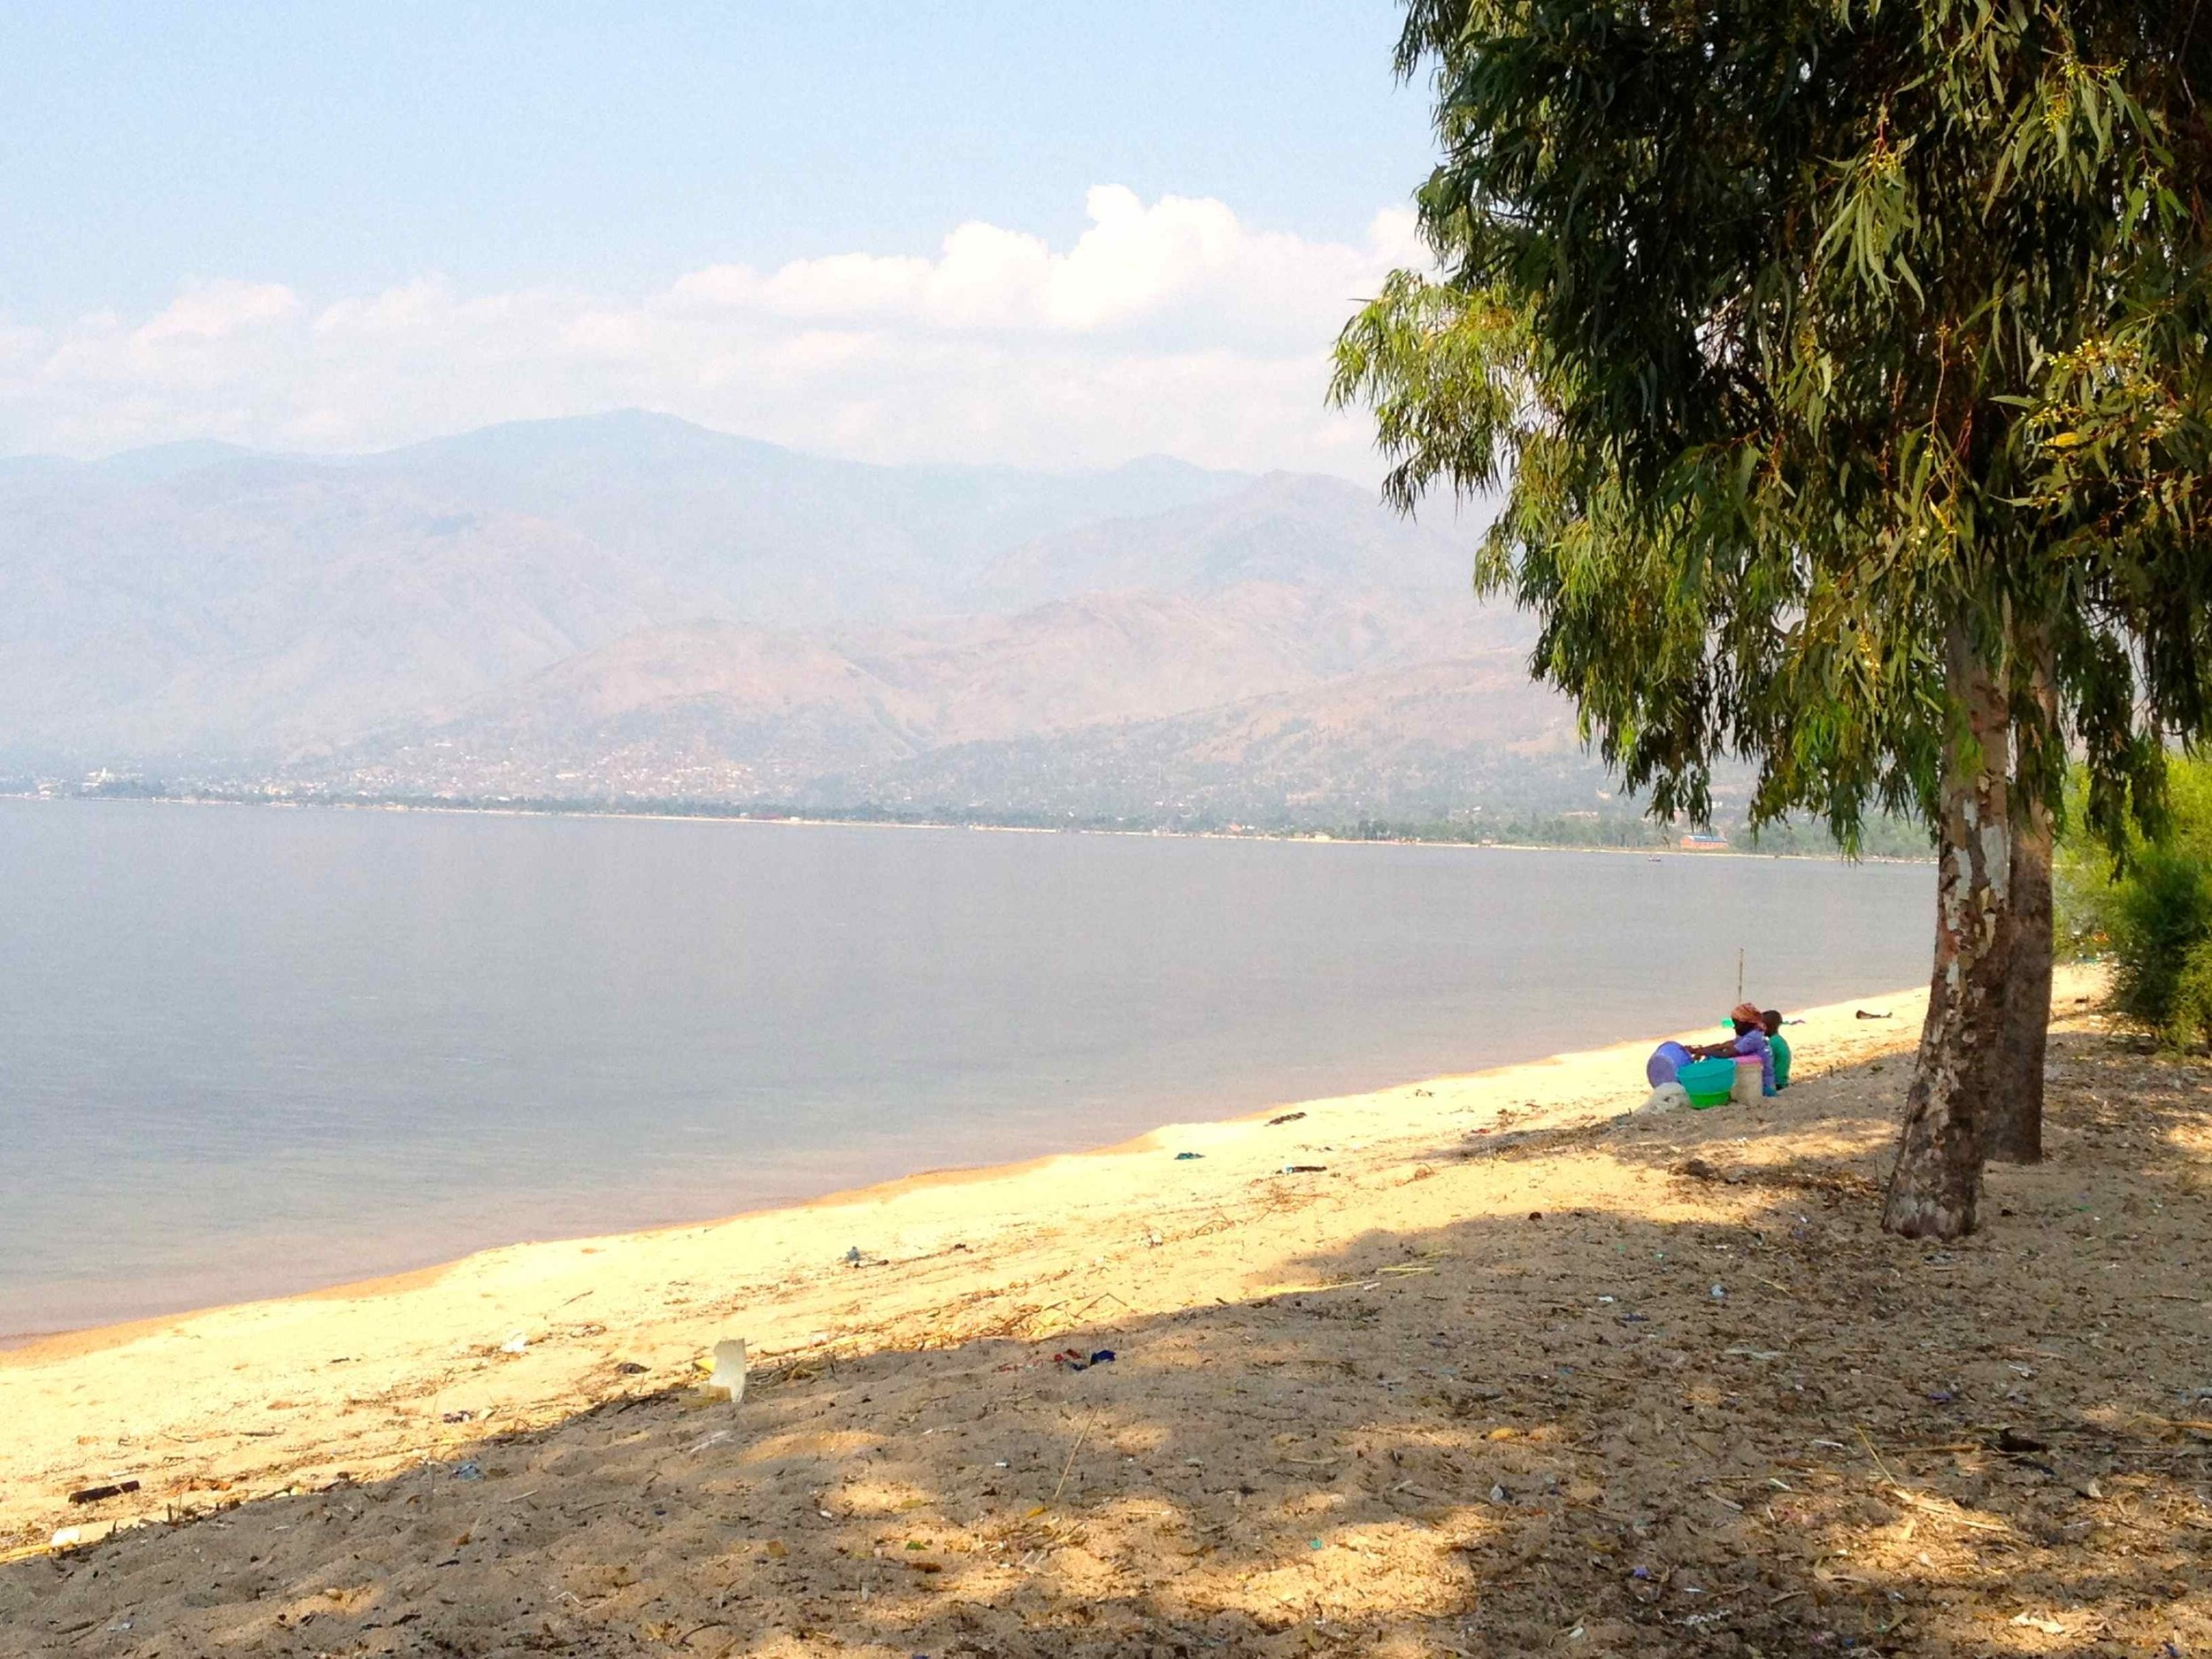 The view of Uvira across Lake Tanganyika from our hotel (Villa Illac)